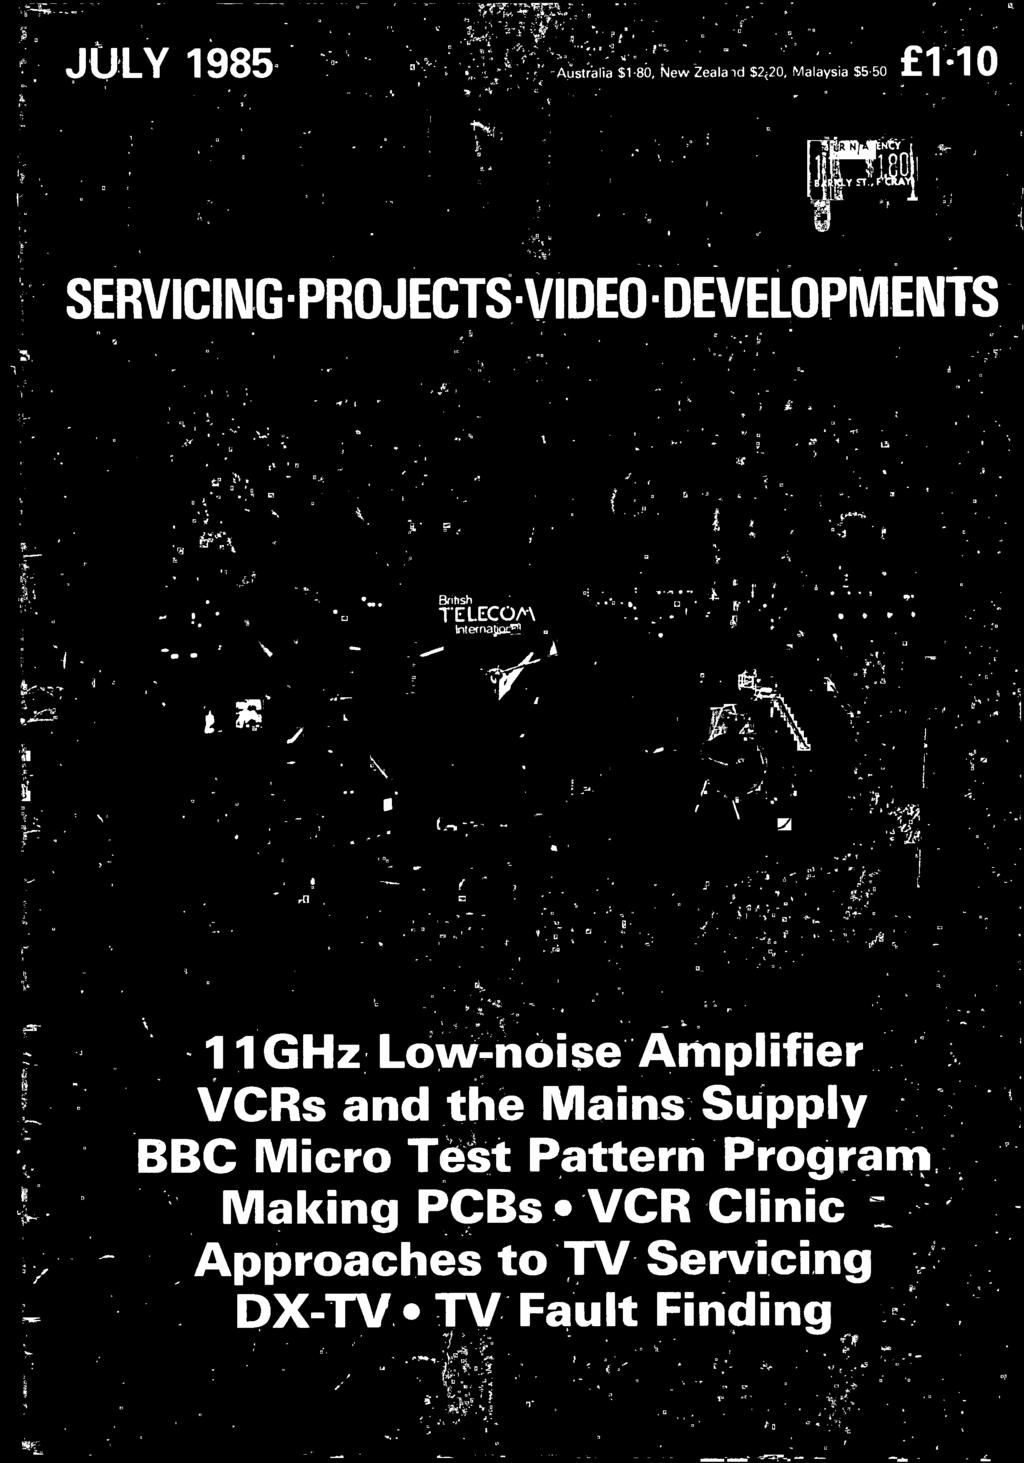 Approaches To Tv Servicing Pdf Car Audio Amplifier With Ic Ta7203p Micro Test Pattern Program Making Pcbs Vcr